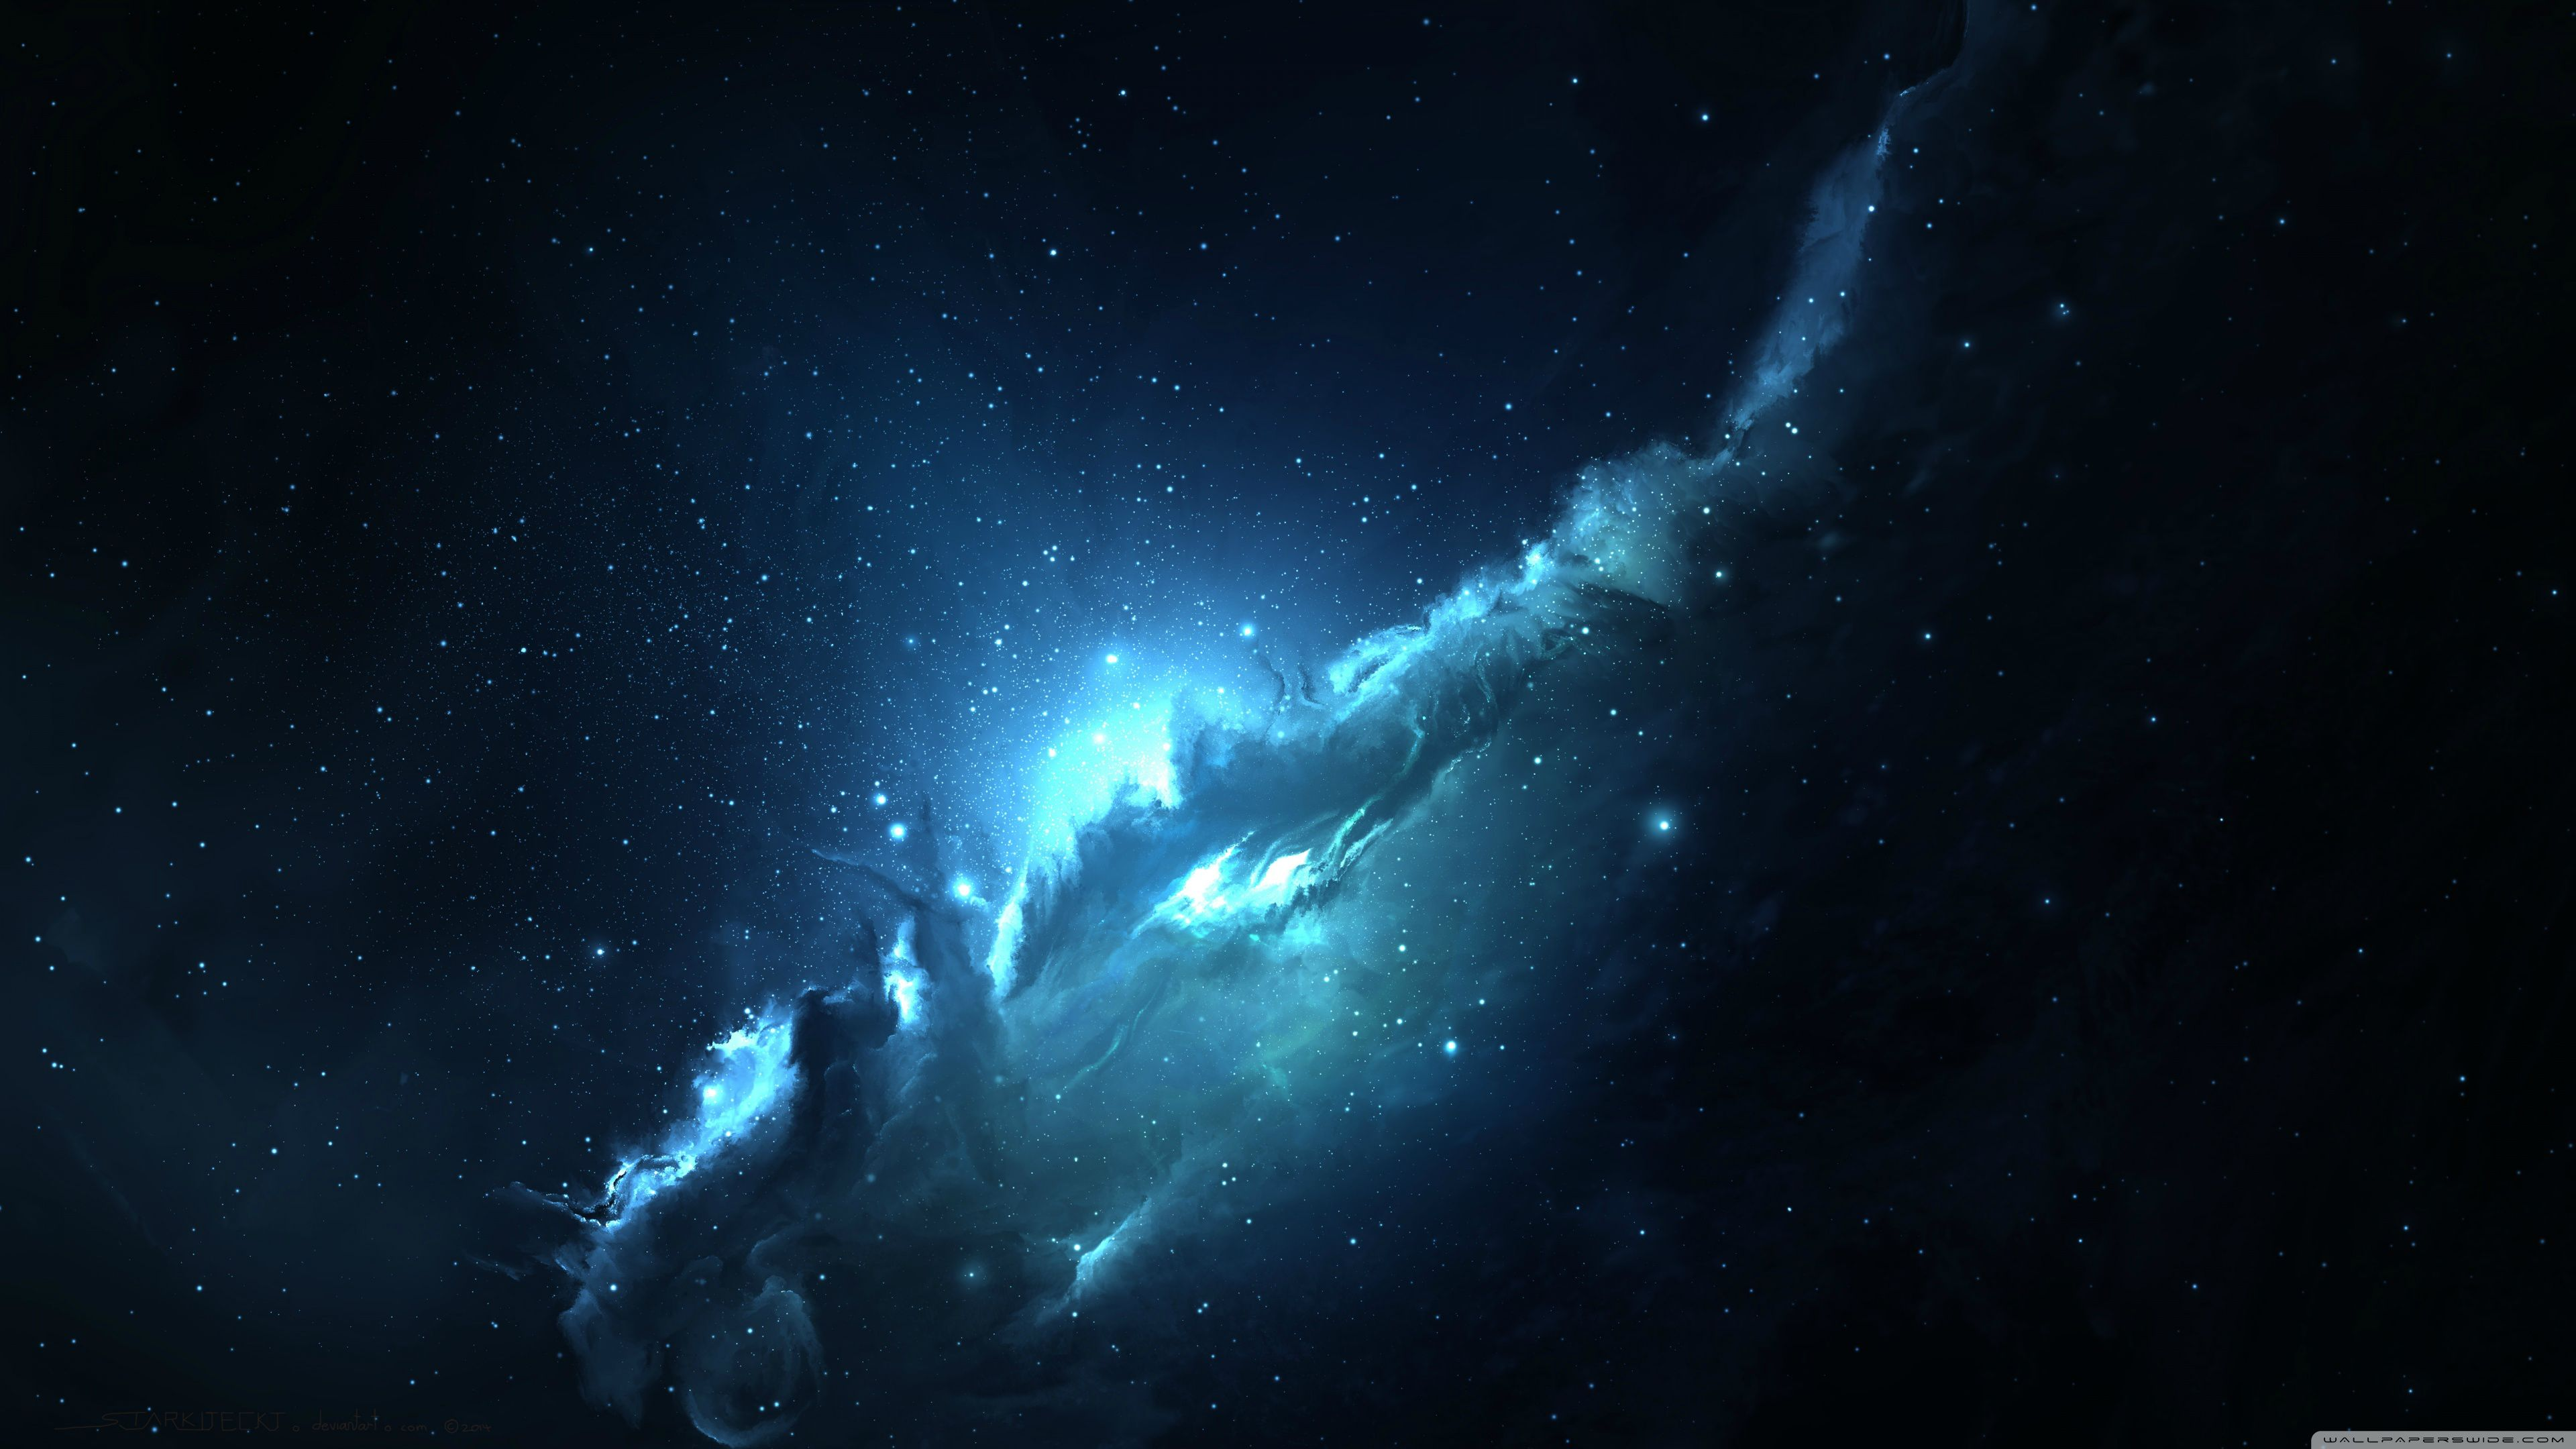 4K Space Wallpapers Collection   Album on Imgur 3840x2160